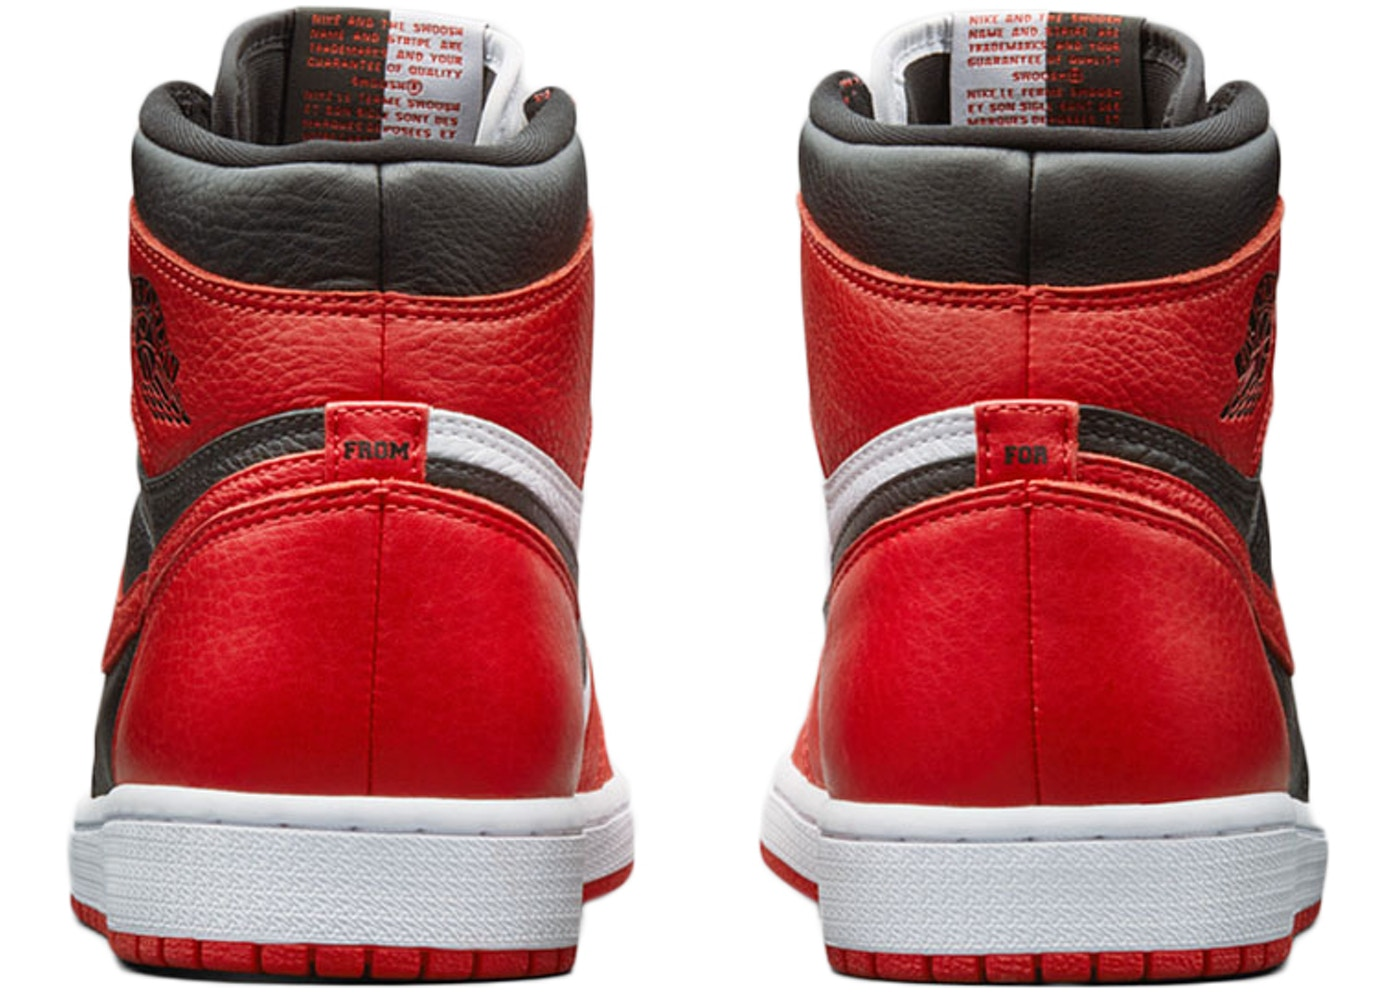 a07ab7e6f61ed8 Jordan 1 Retro High Homage To Home Chicago (Numbered) - AR9880-023